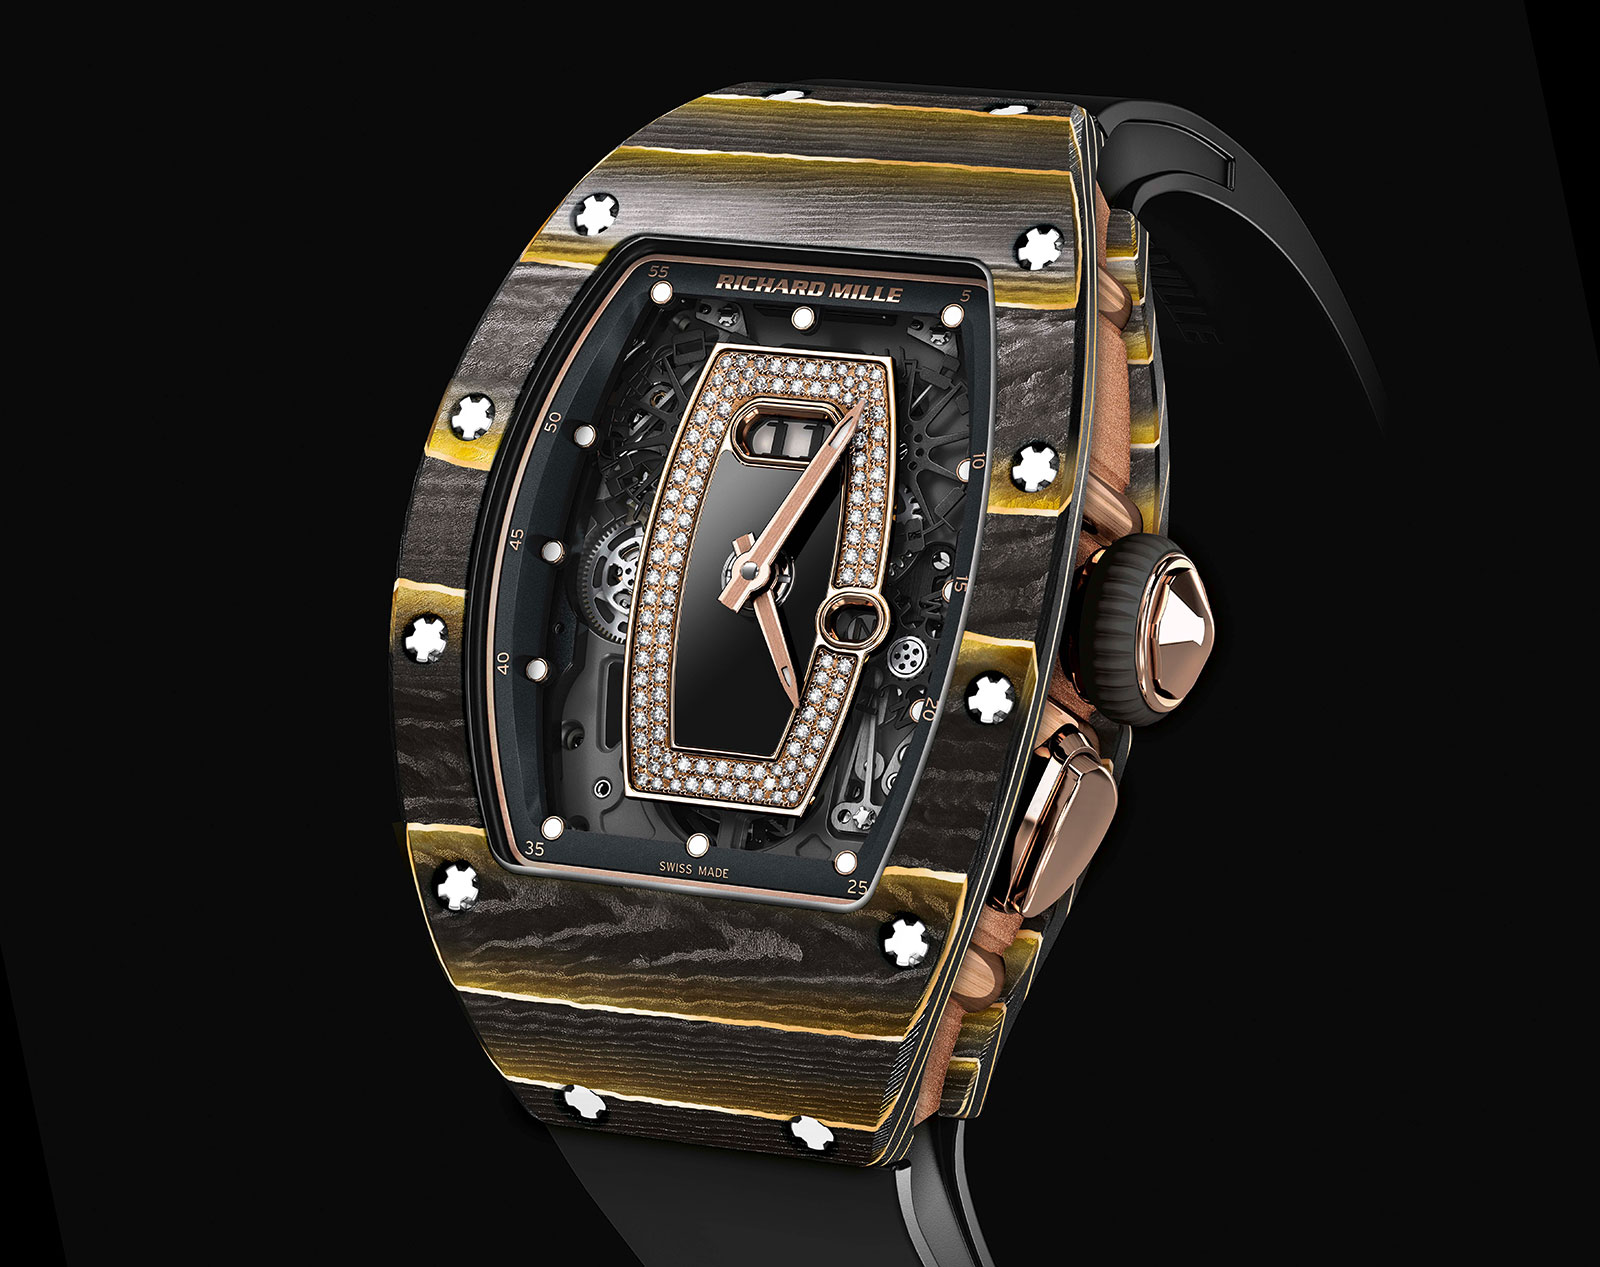 Richard-Mille-RM-037-Gold-NTPT-carbon